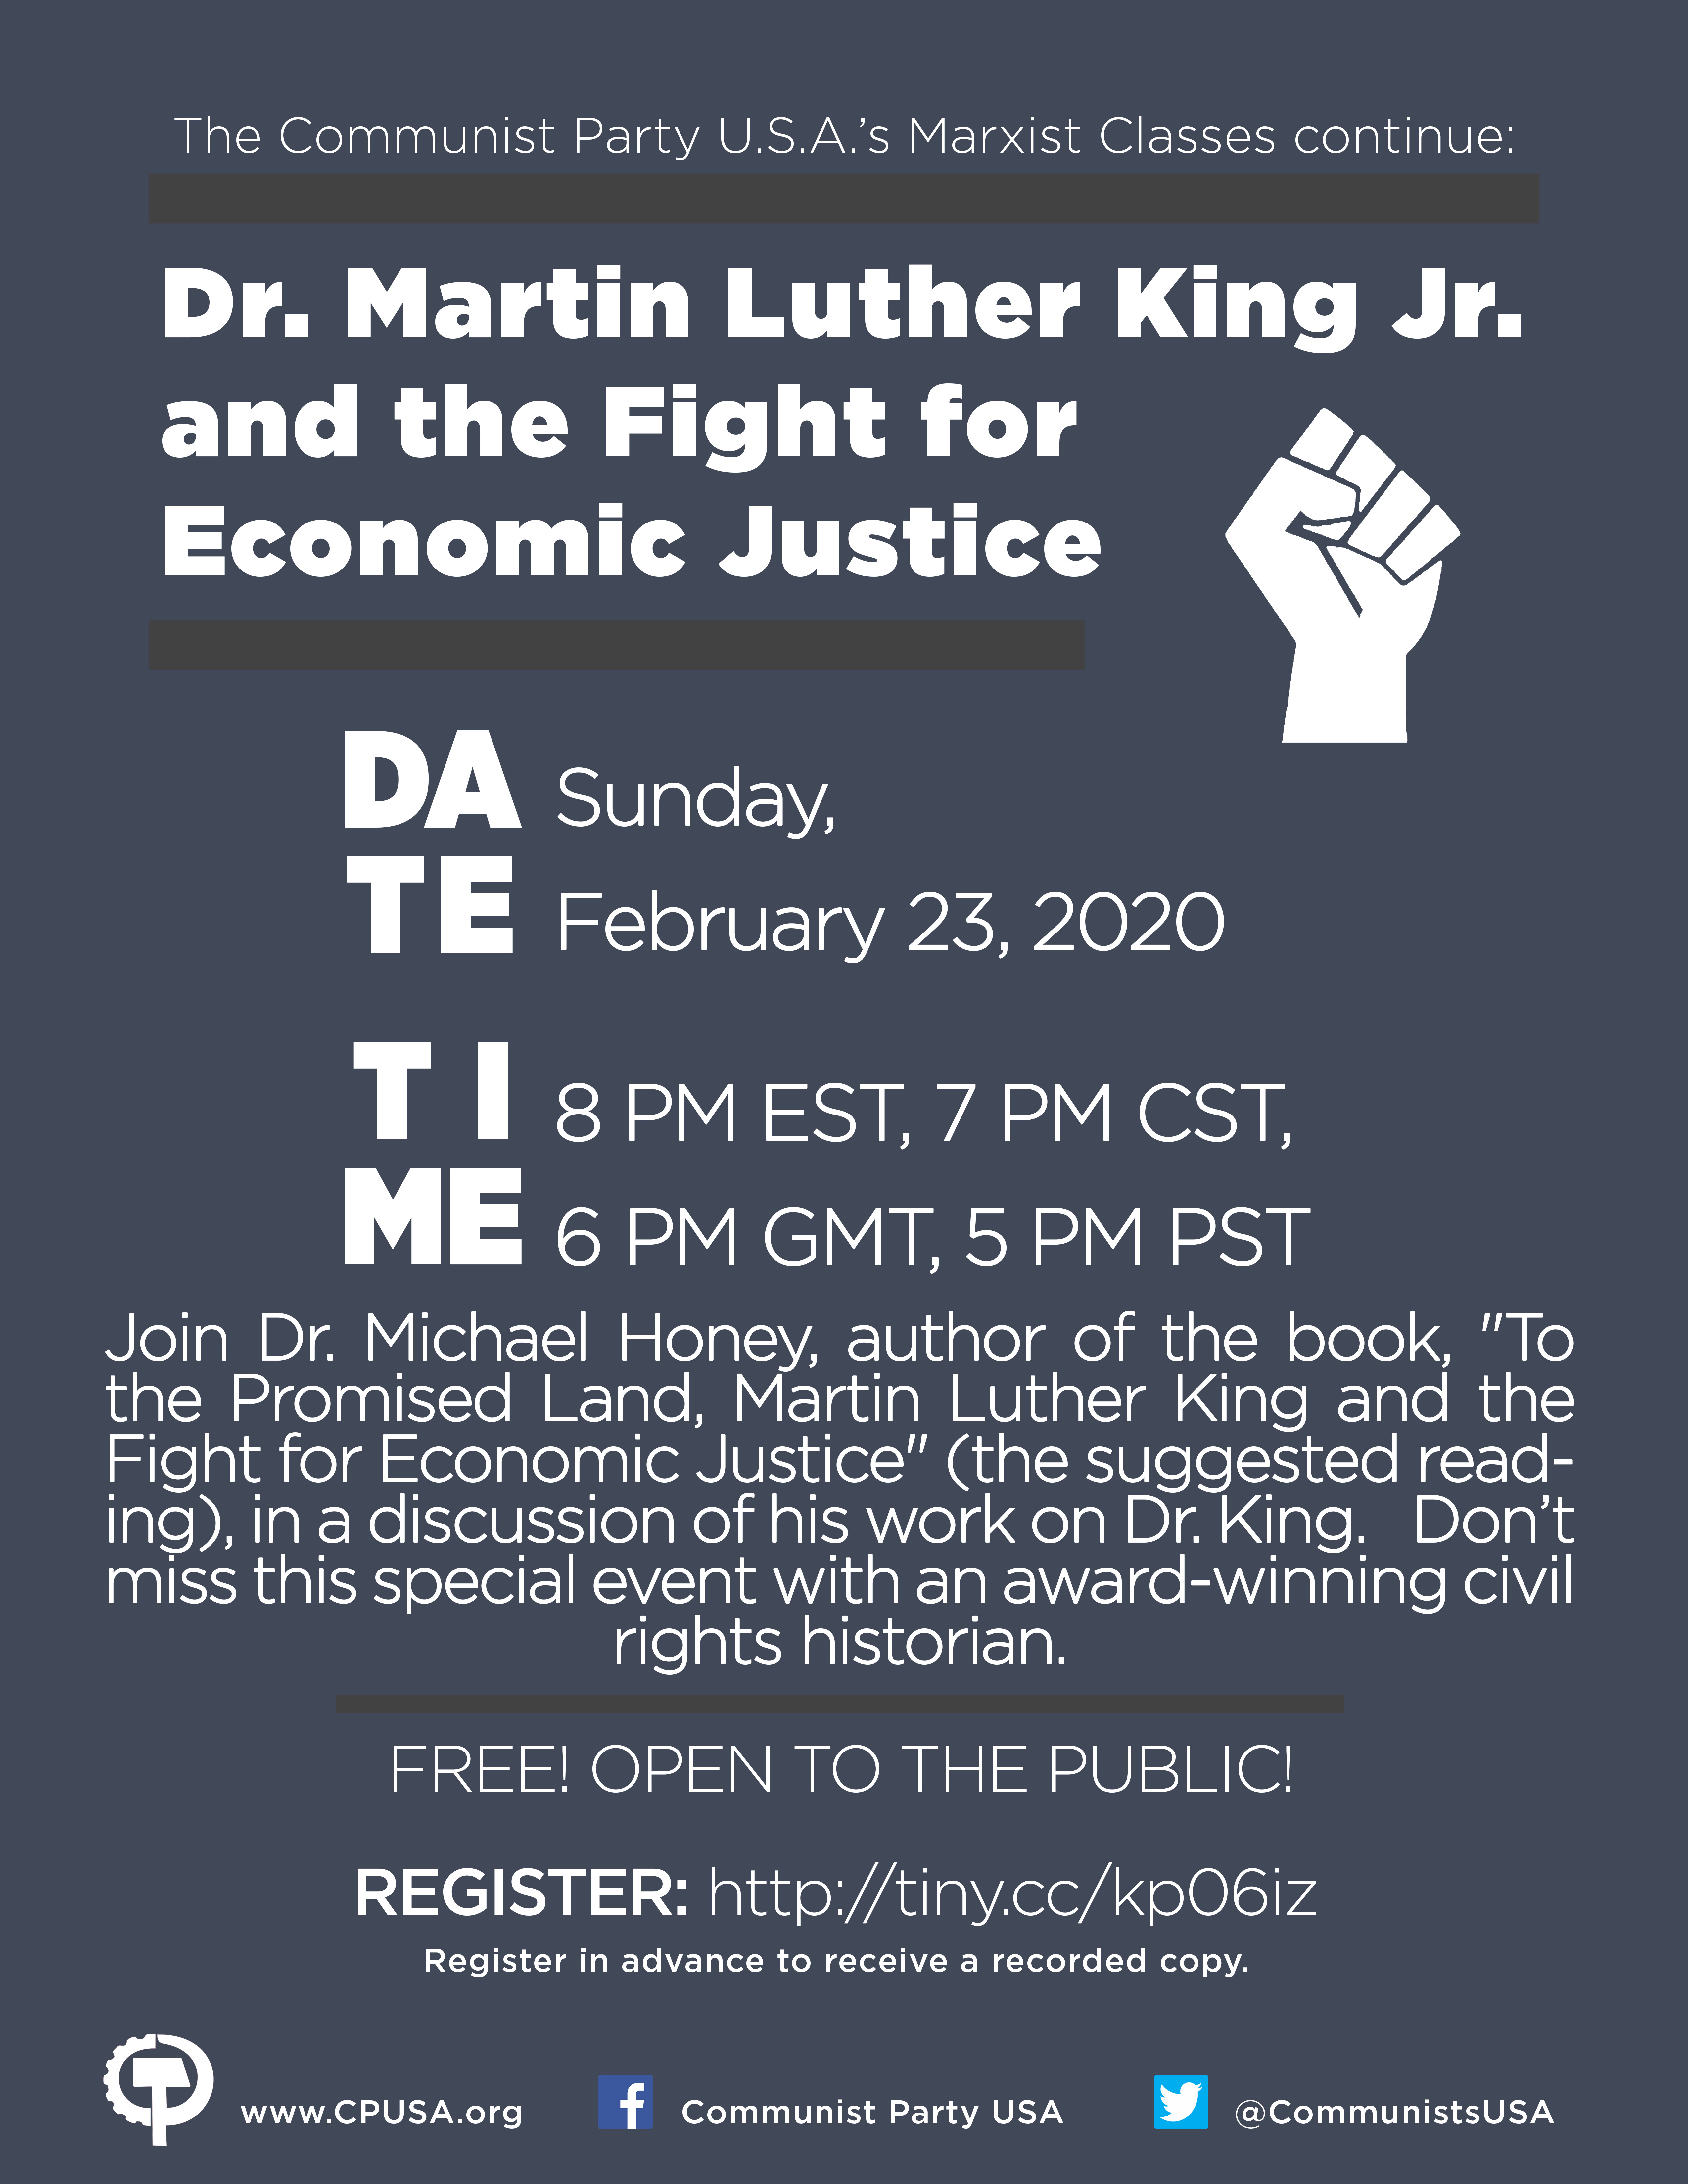 Dr. Martin Luther King Jr. and the fight for economic justice